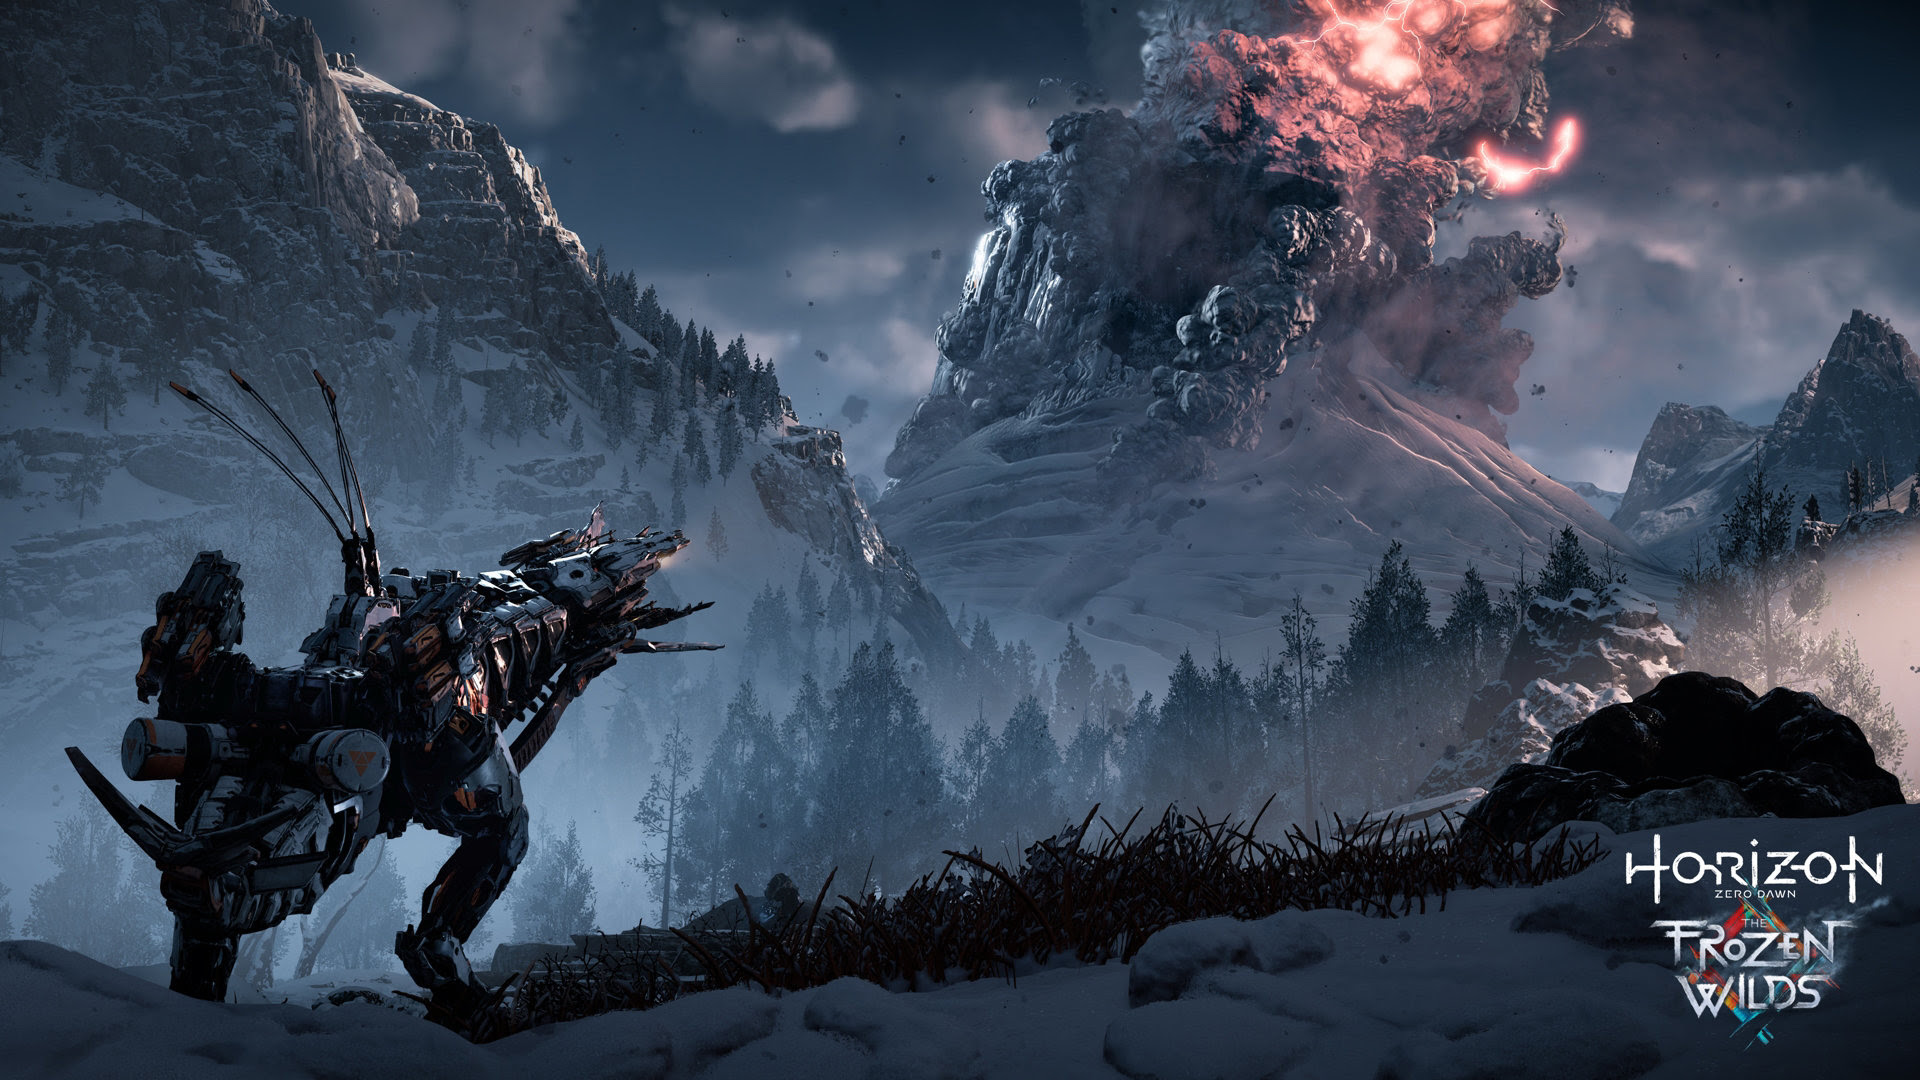 Horizon Zero Dawn's story expansion is out this November screenshot